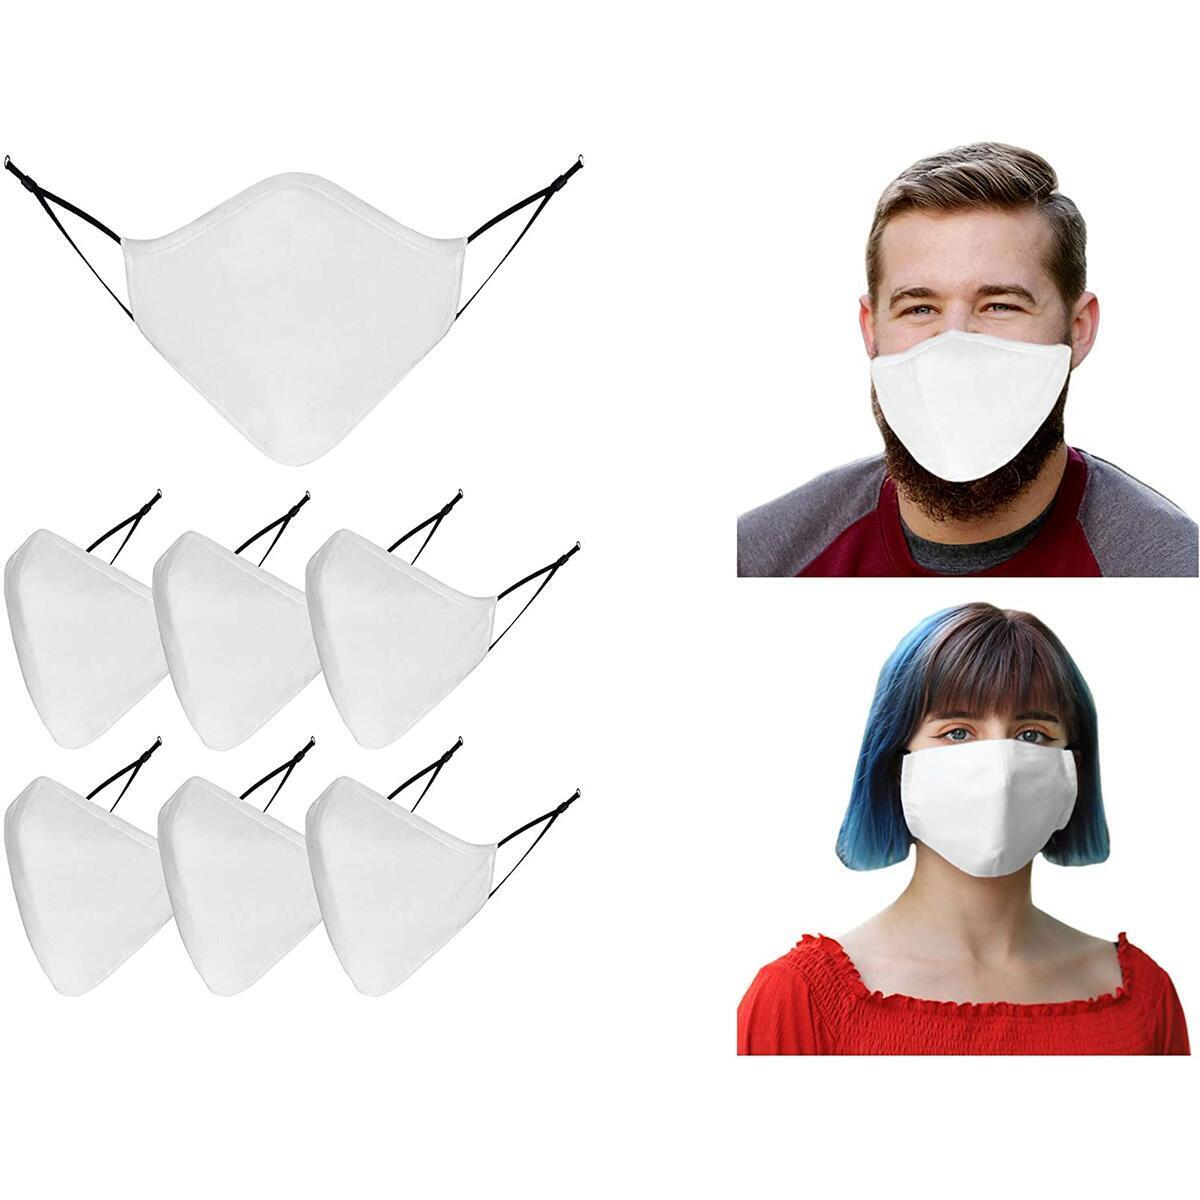 Cotton Washable Cloth Face Mask - Adjustable and Reusable 3 Layer Protective Fabric Face Cover, Breathable Mouth Mask (Pack of 7, White)